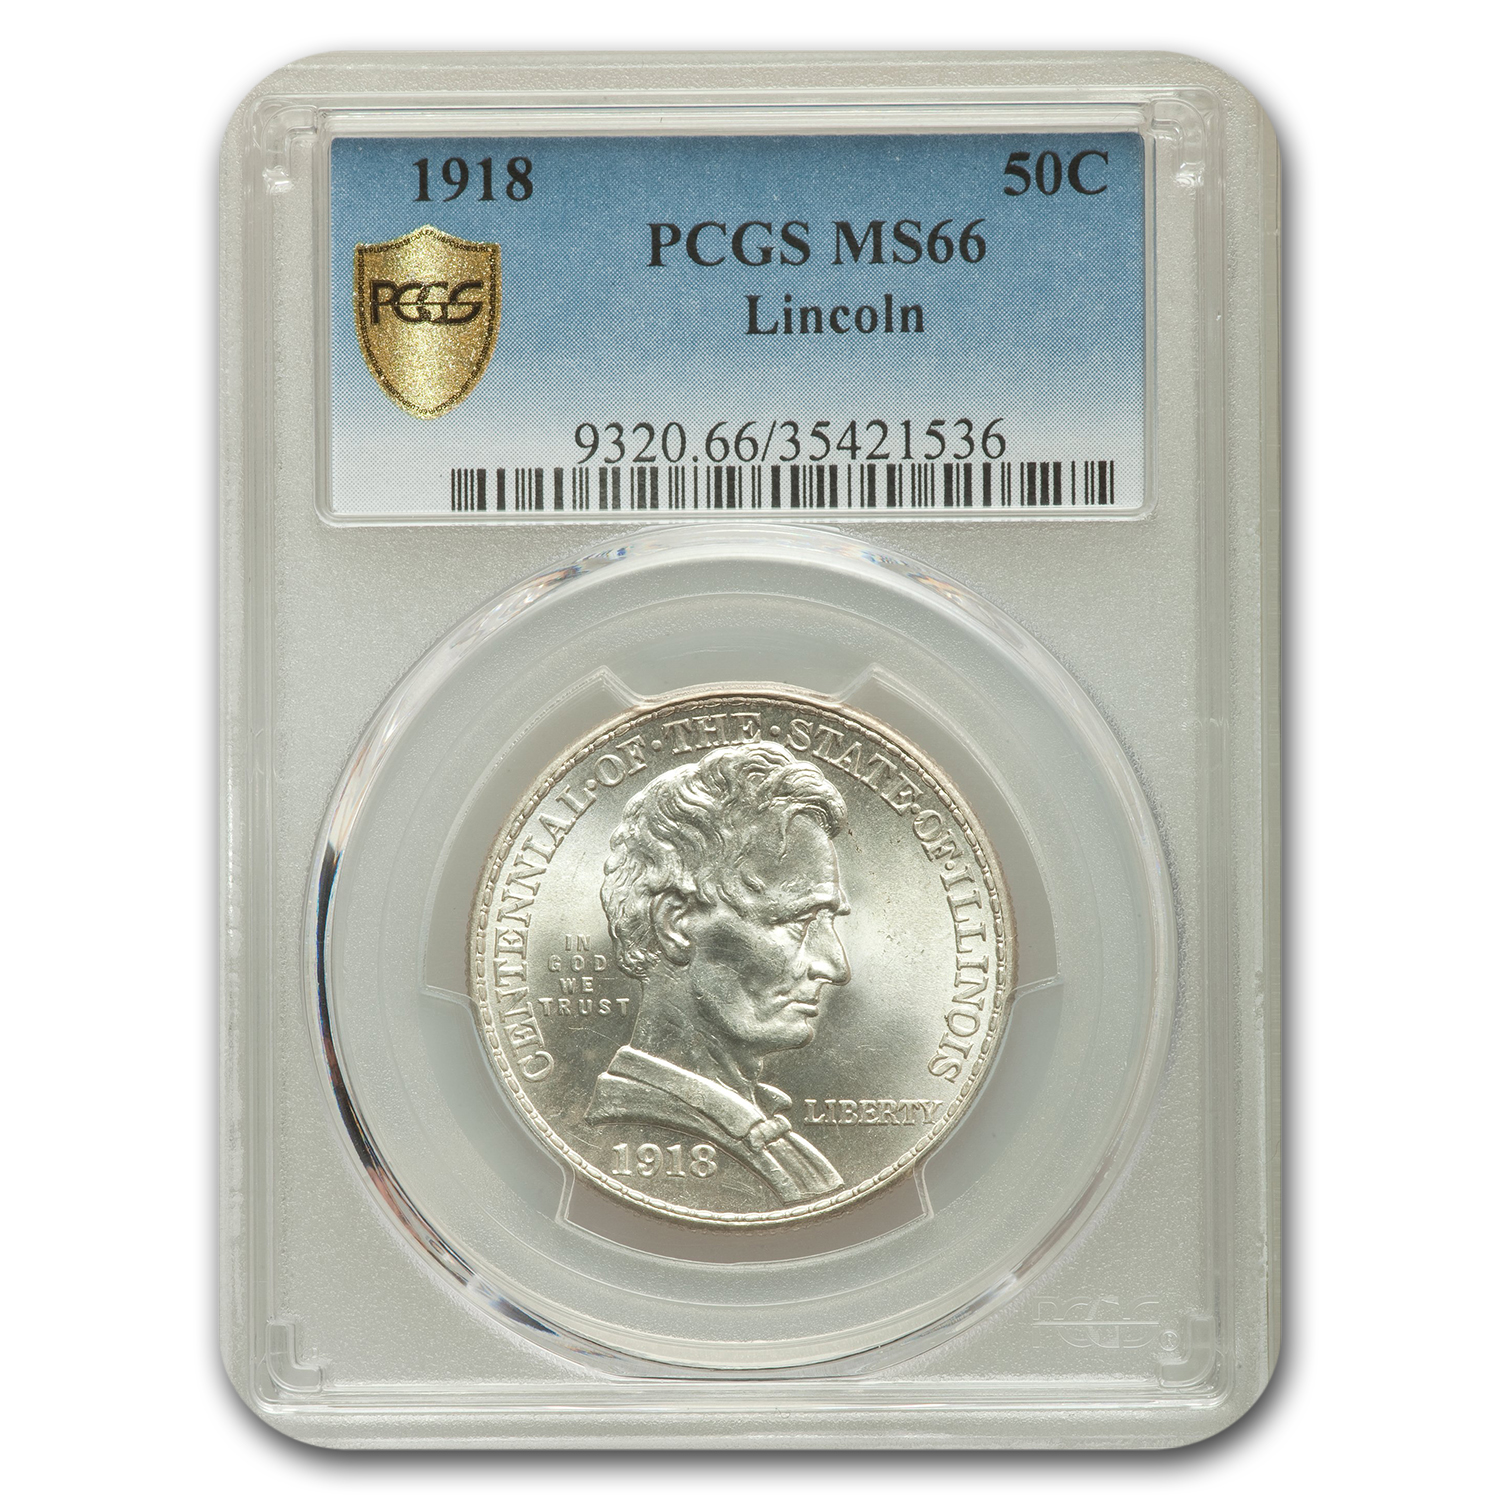 1918 Lincoln Illinois Centennial Half Dollar MS-66 PCGS